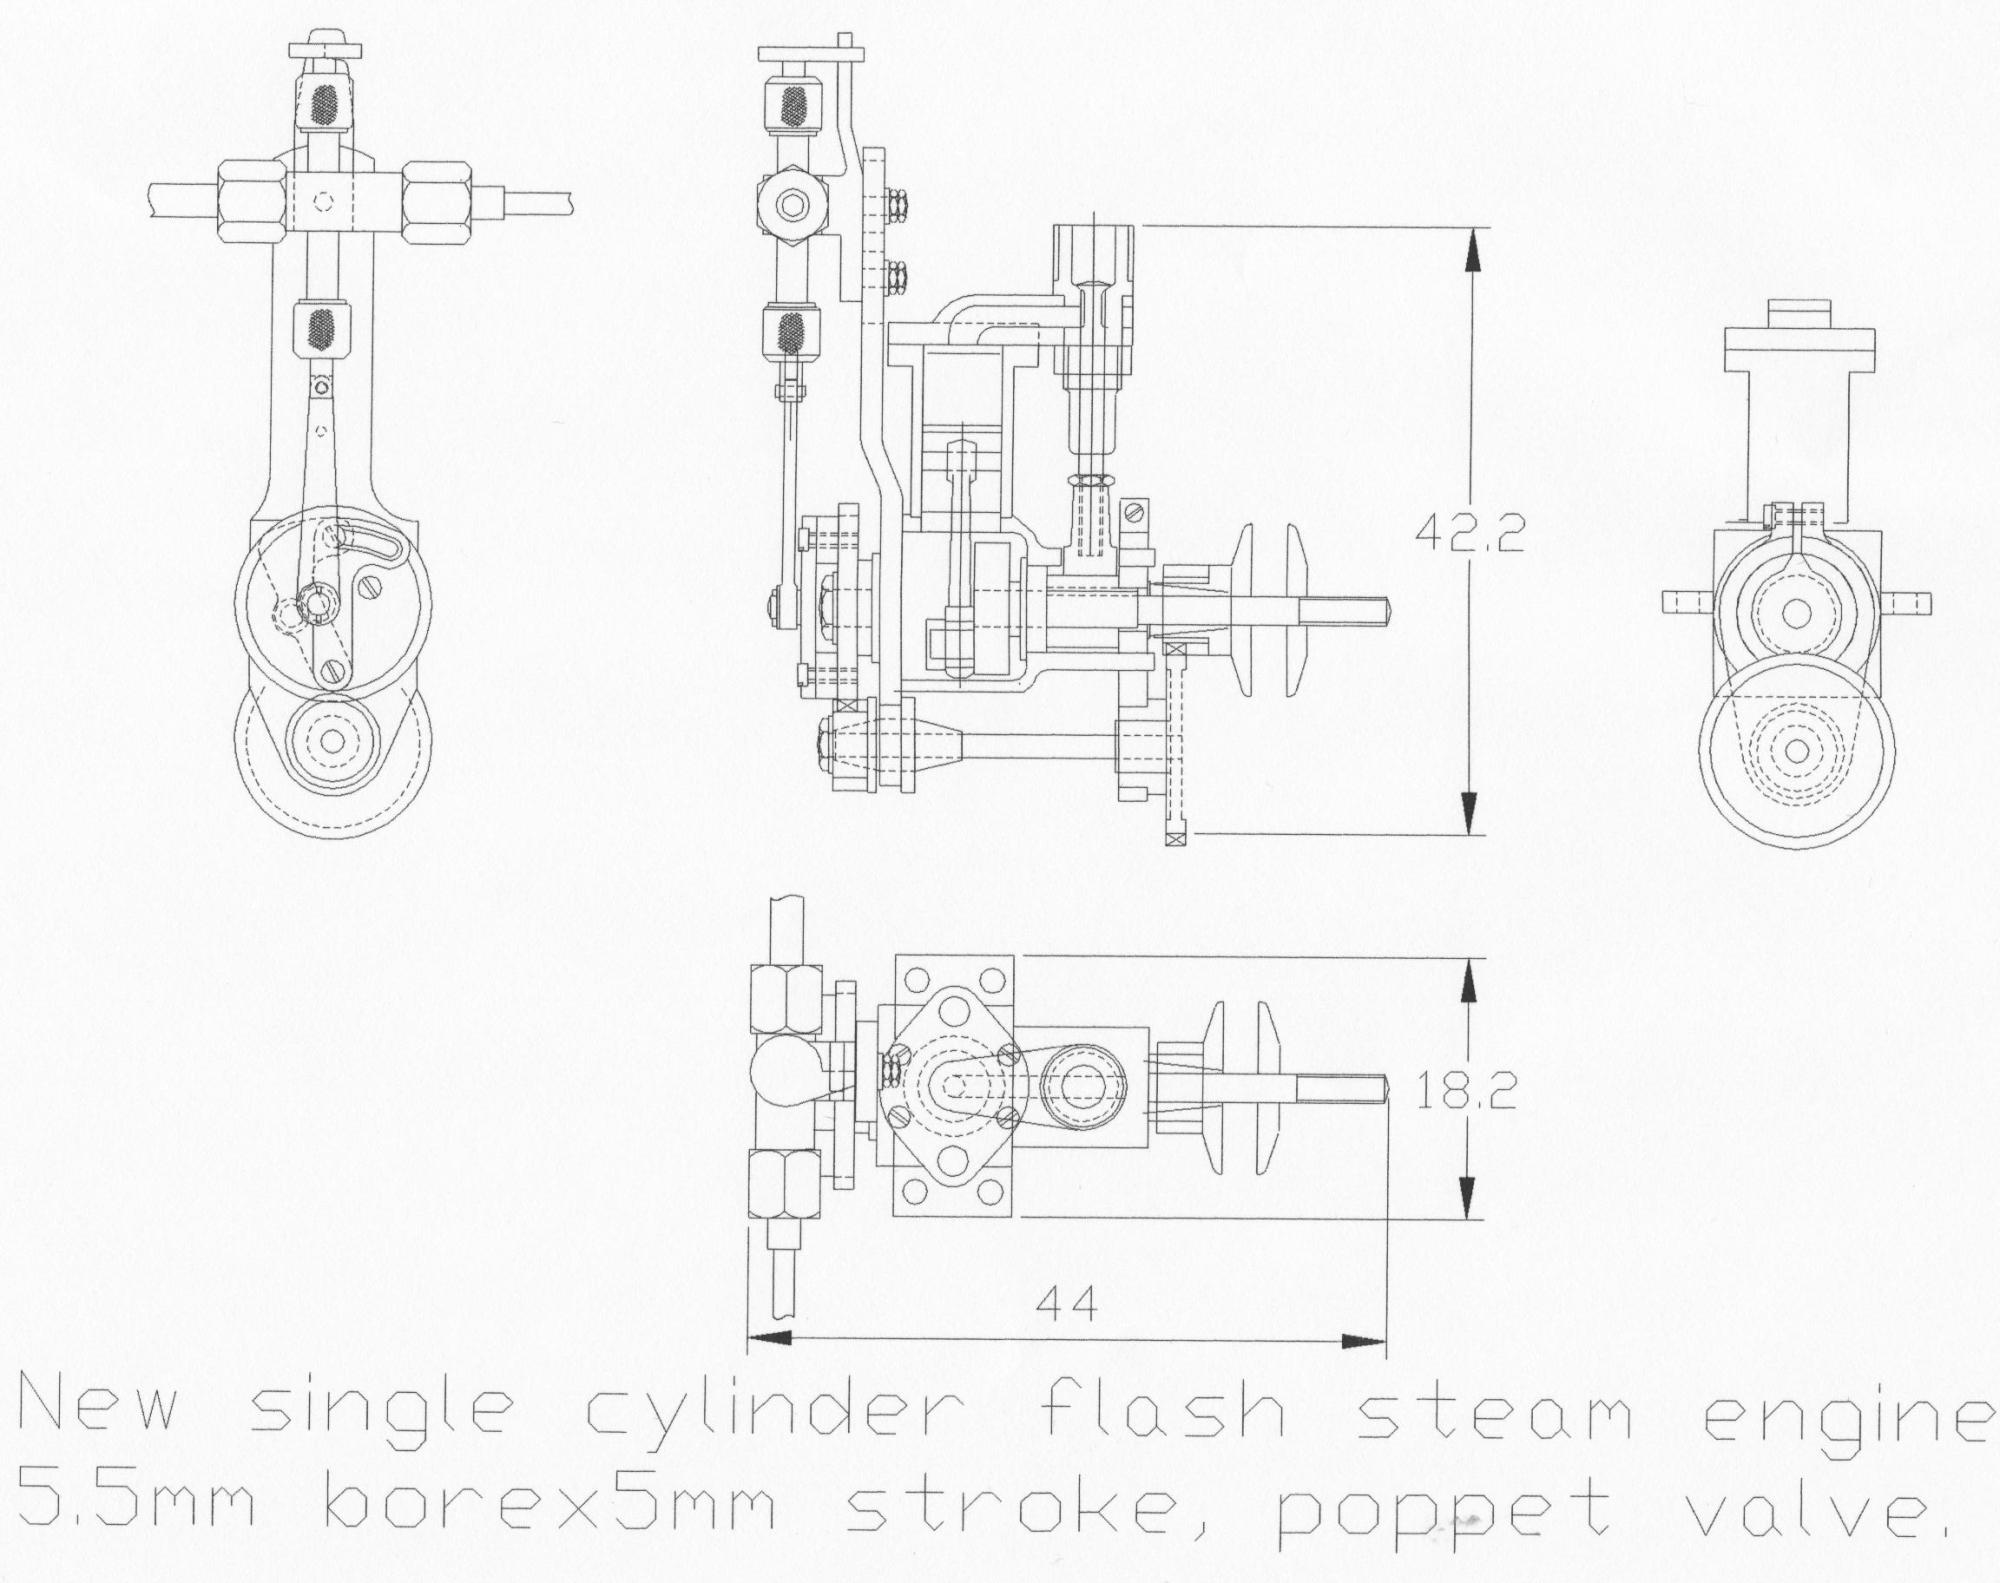 hight resolution of as mentioned i decided to try to design and build an even smaller engine and monotube the engine is 5 mm bore x 5 mm stroke uniflow the monotube is 7